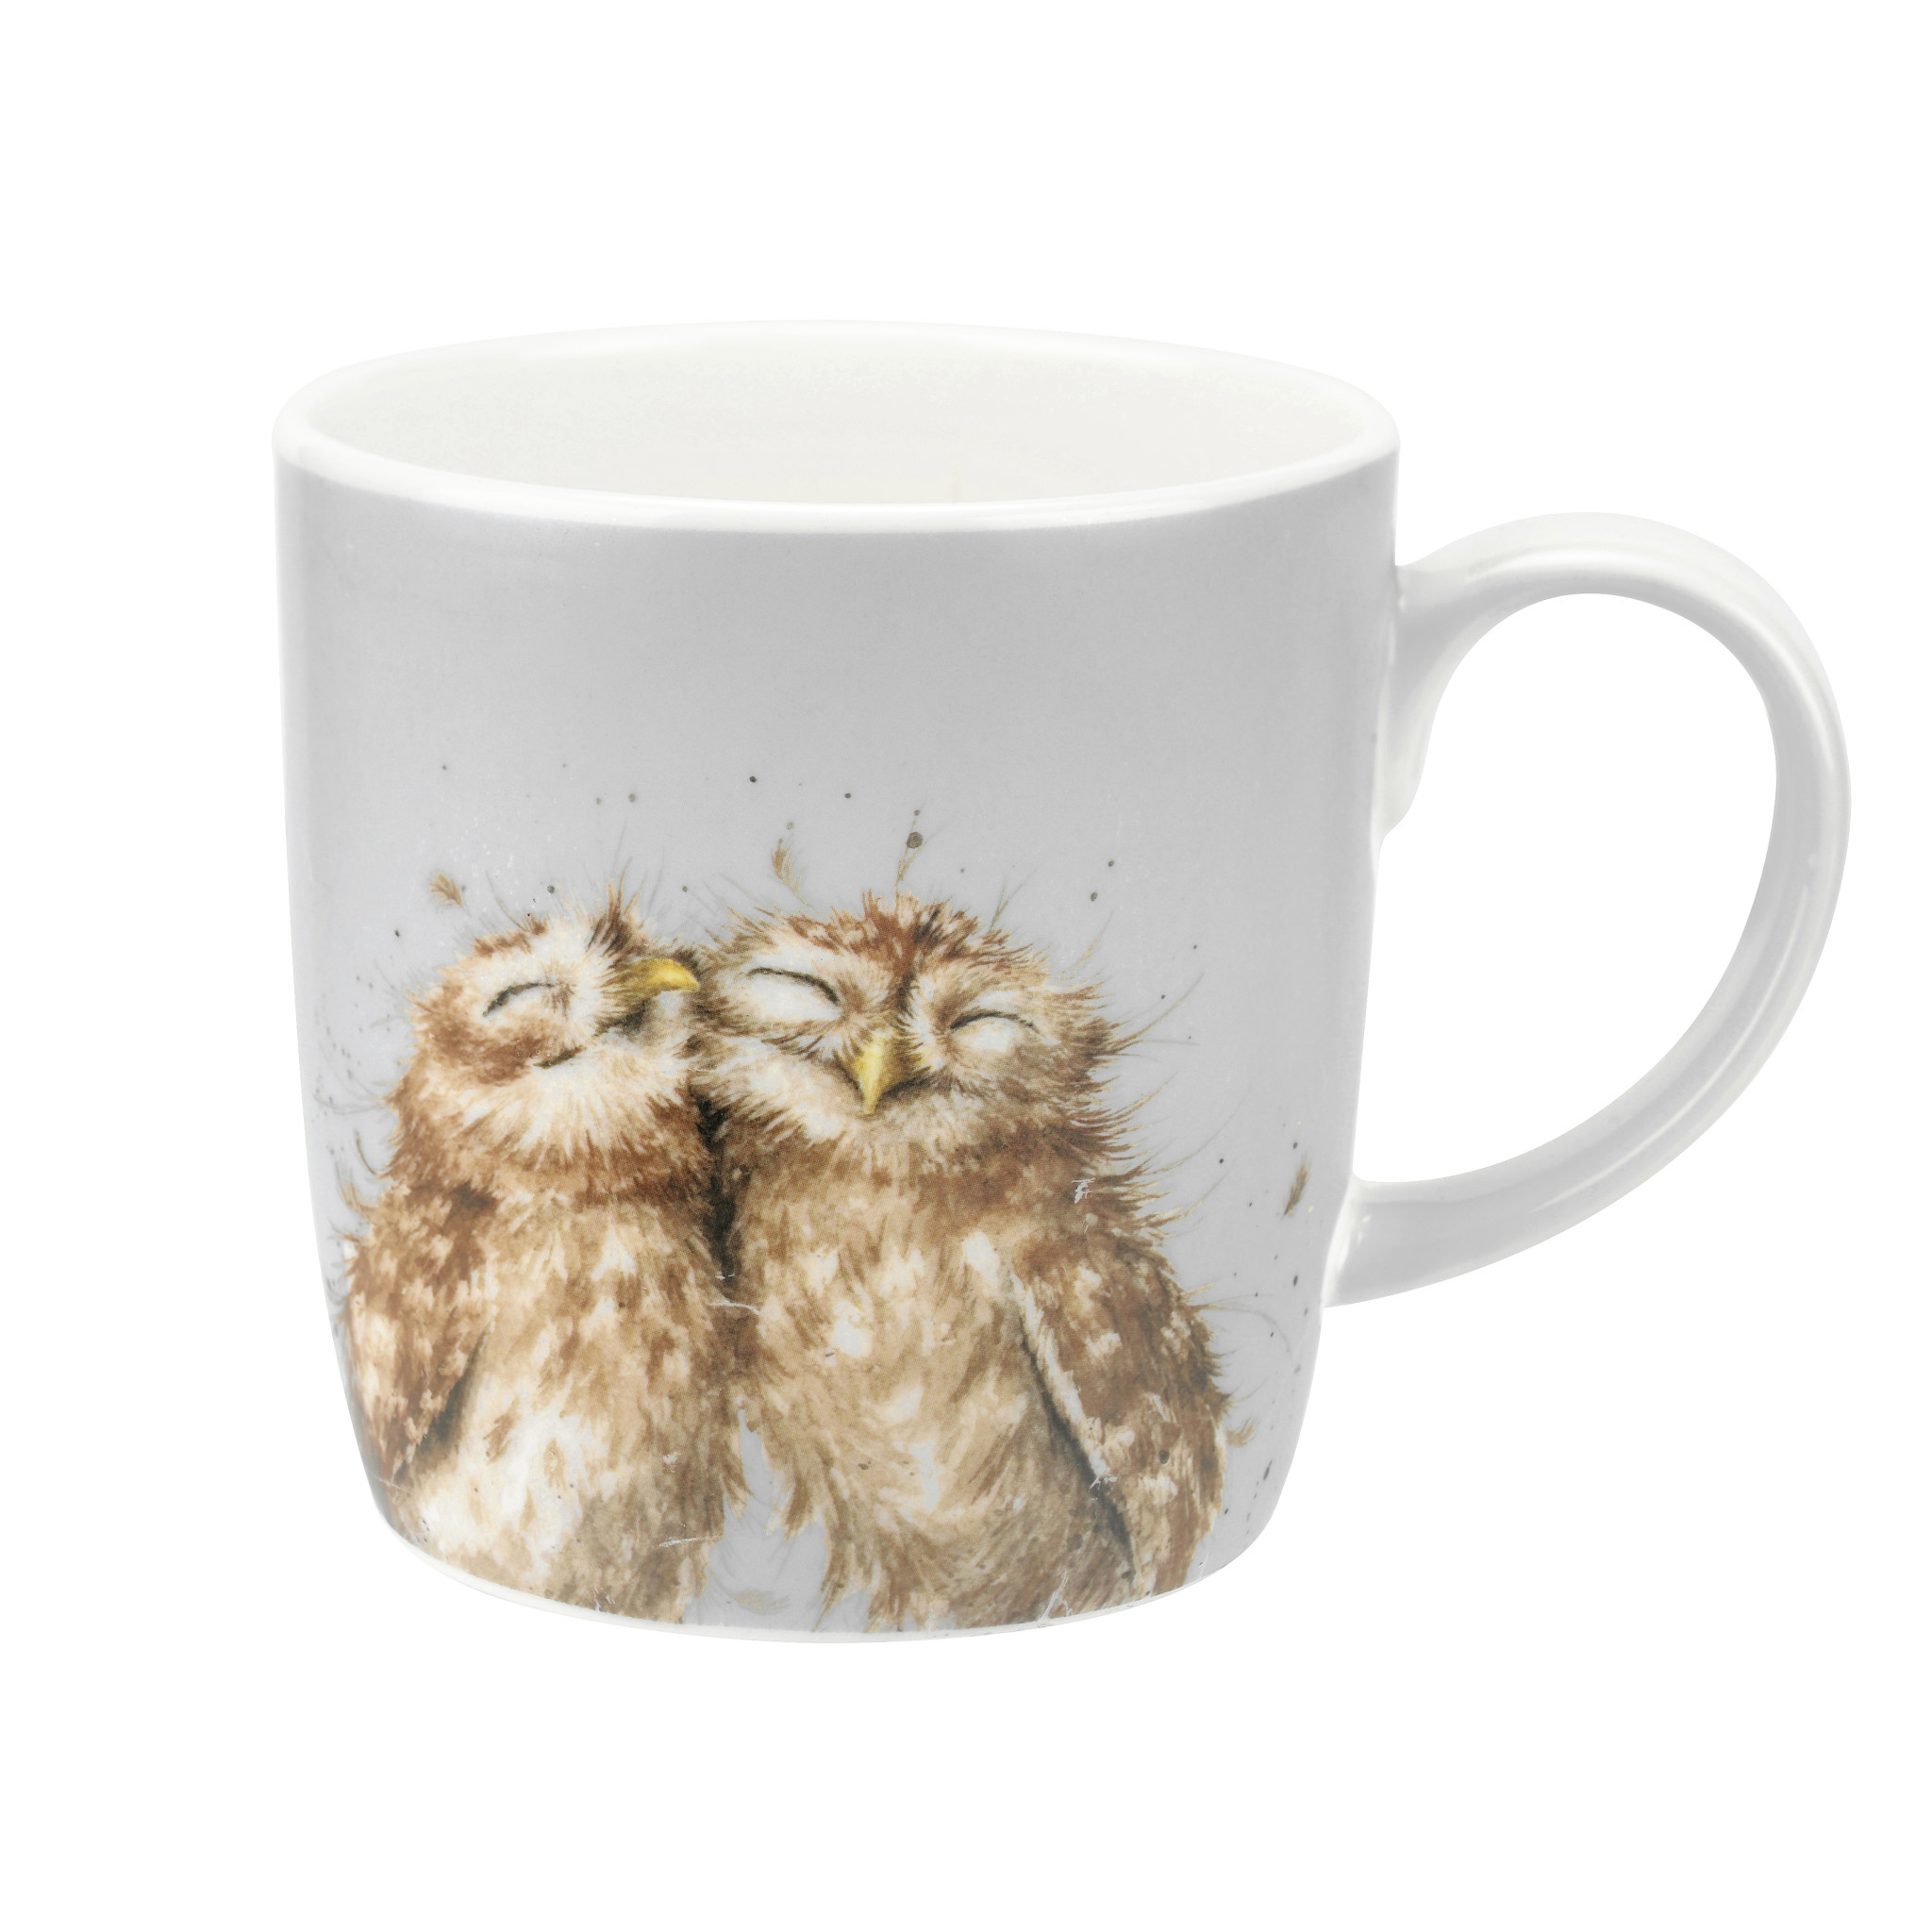 Wrendale Designs Large 'Birds of a Feather' Mug